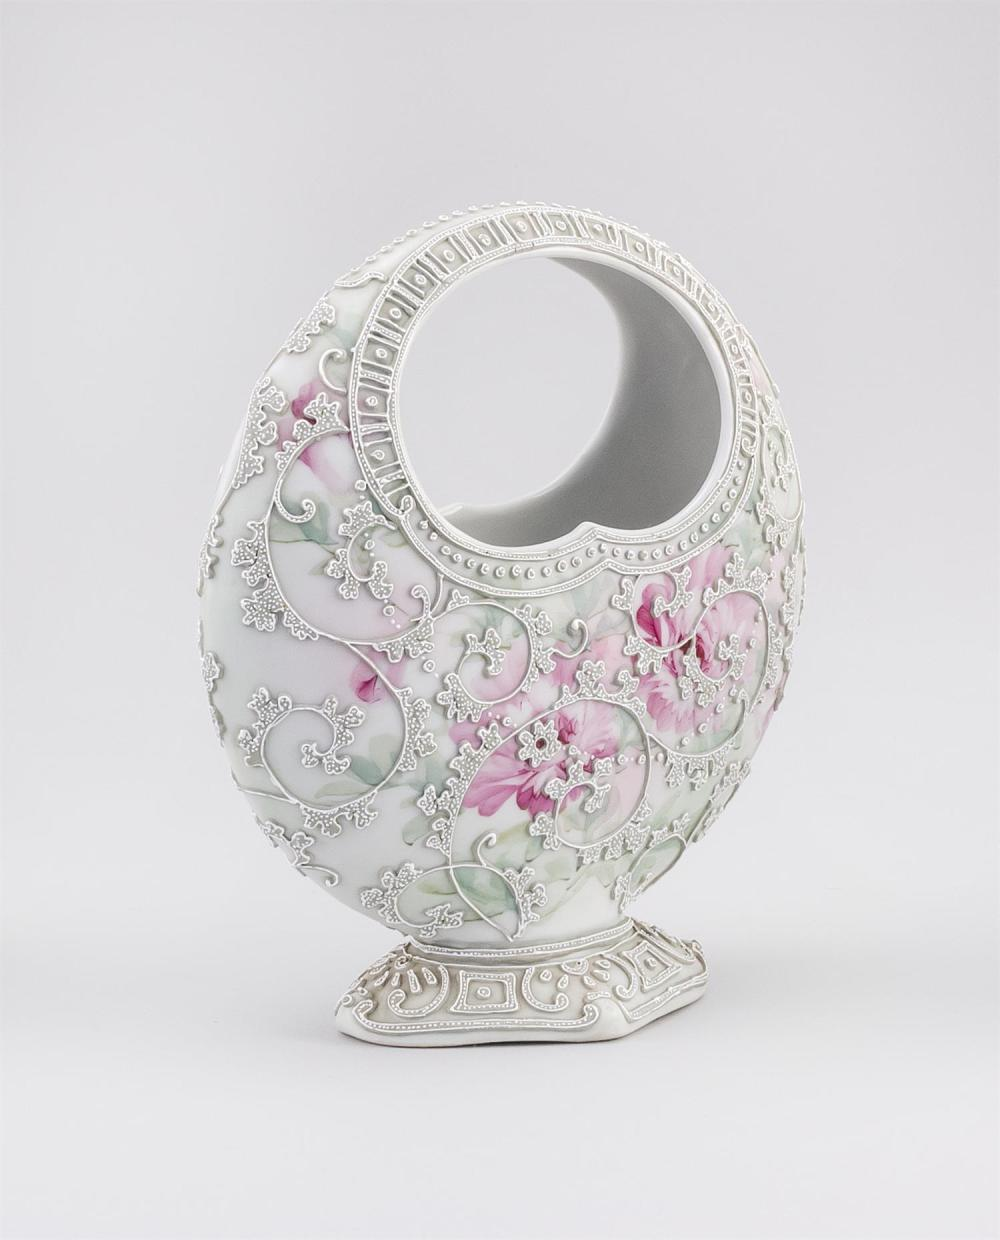 MORIAGE NIPPON PORCELAIN VASE In basket form, with moriage vines on a pink floral-patterned ground. Height 8.75